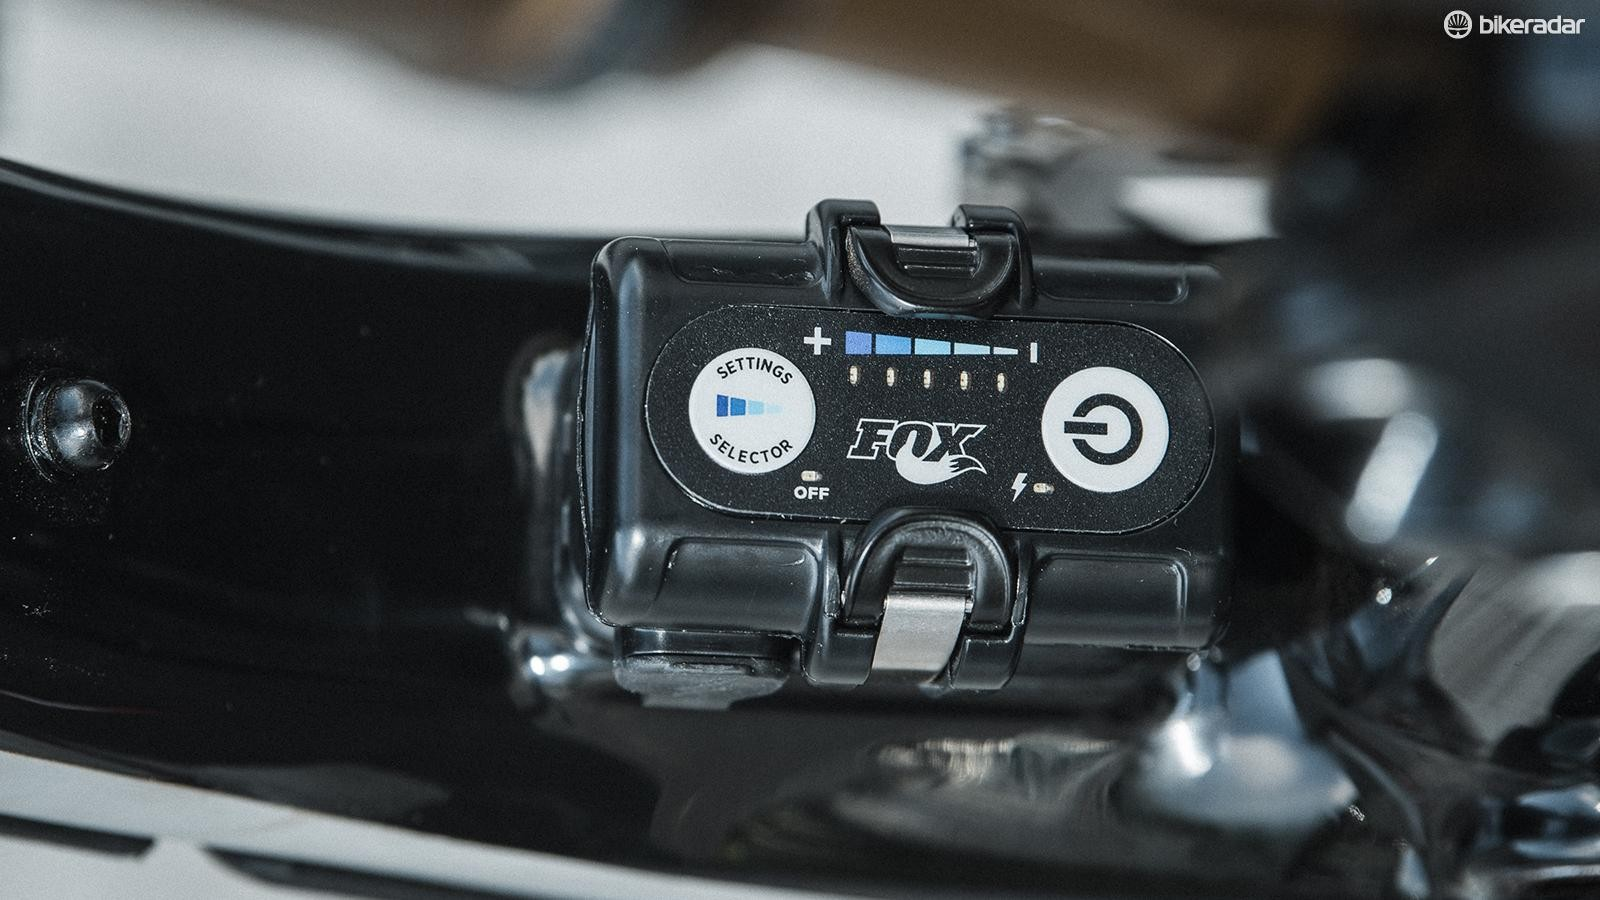 The control unit houses the battery, computer and a three-axis accelerometer which determines gradient. The left button selects the mode, indicated by LEDs.